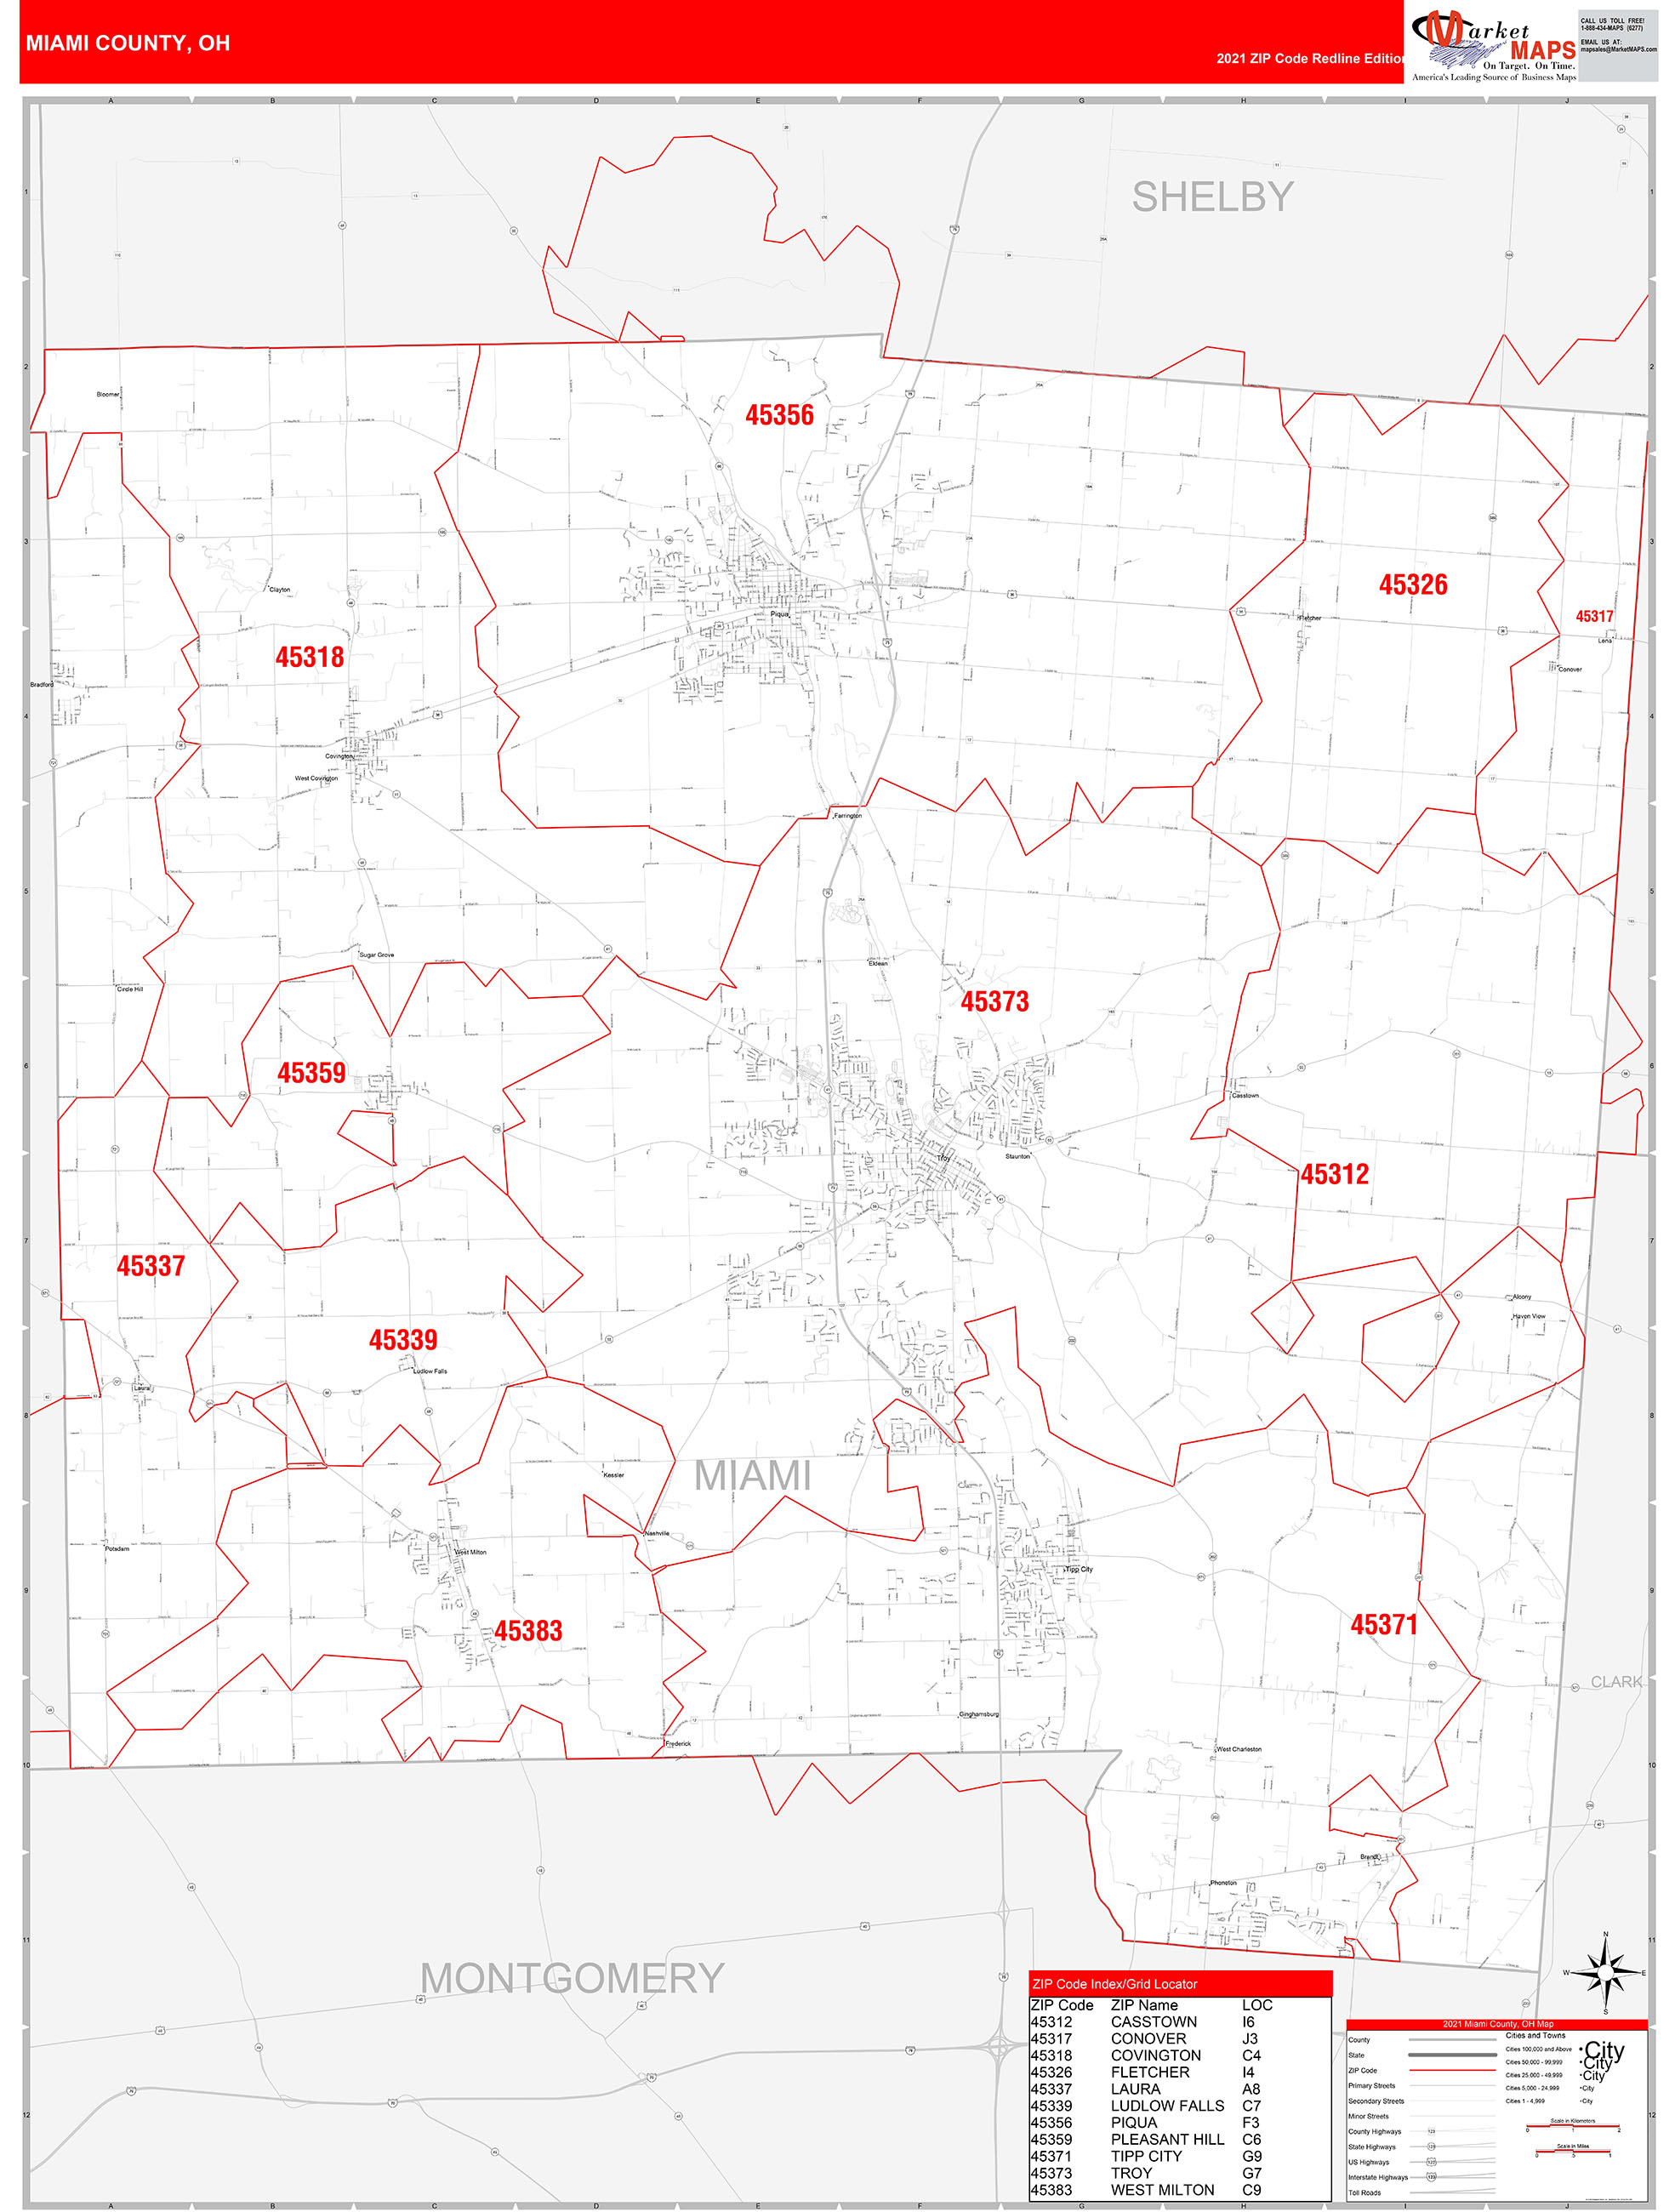 miami county, oh zip code wall map red line style